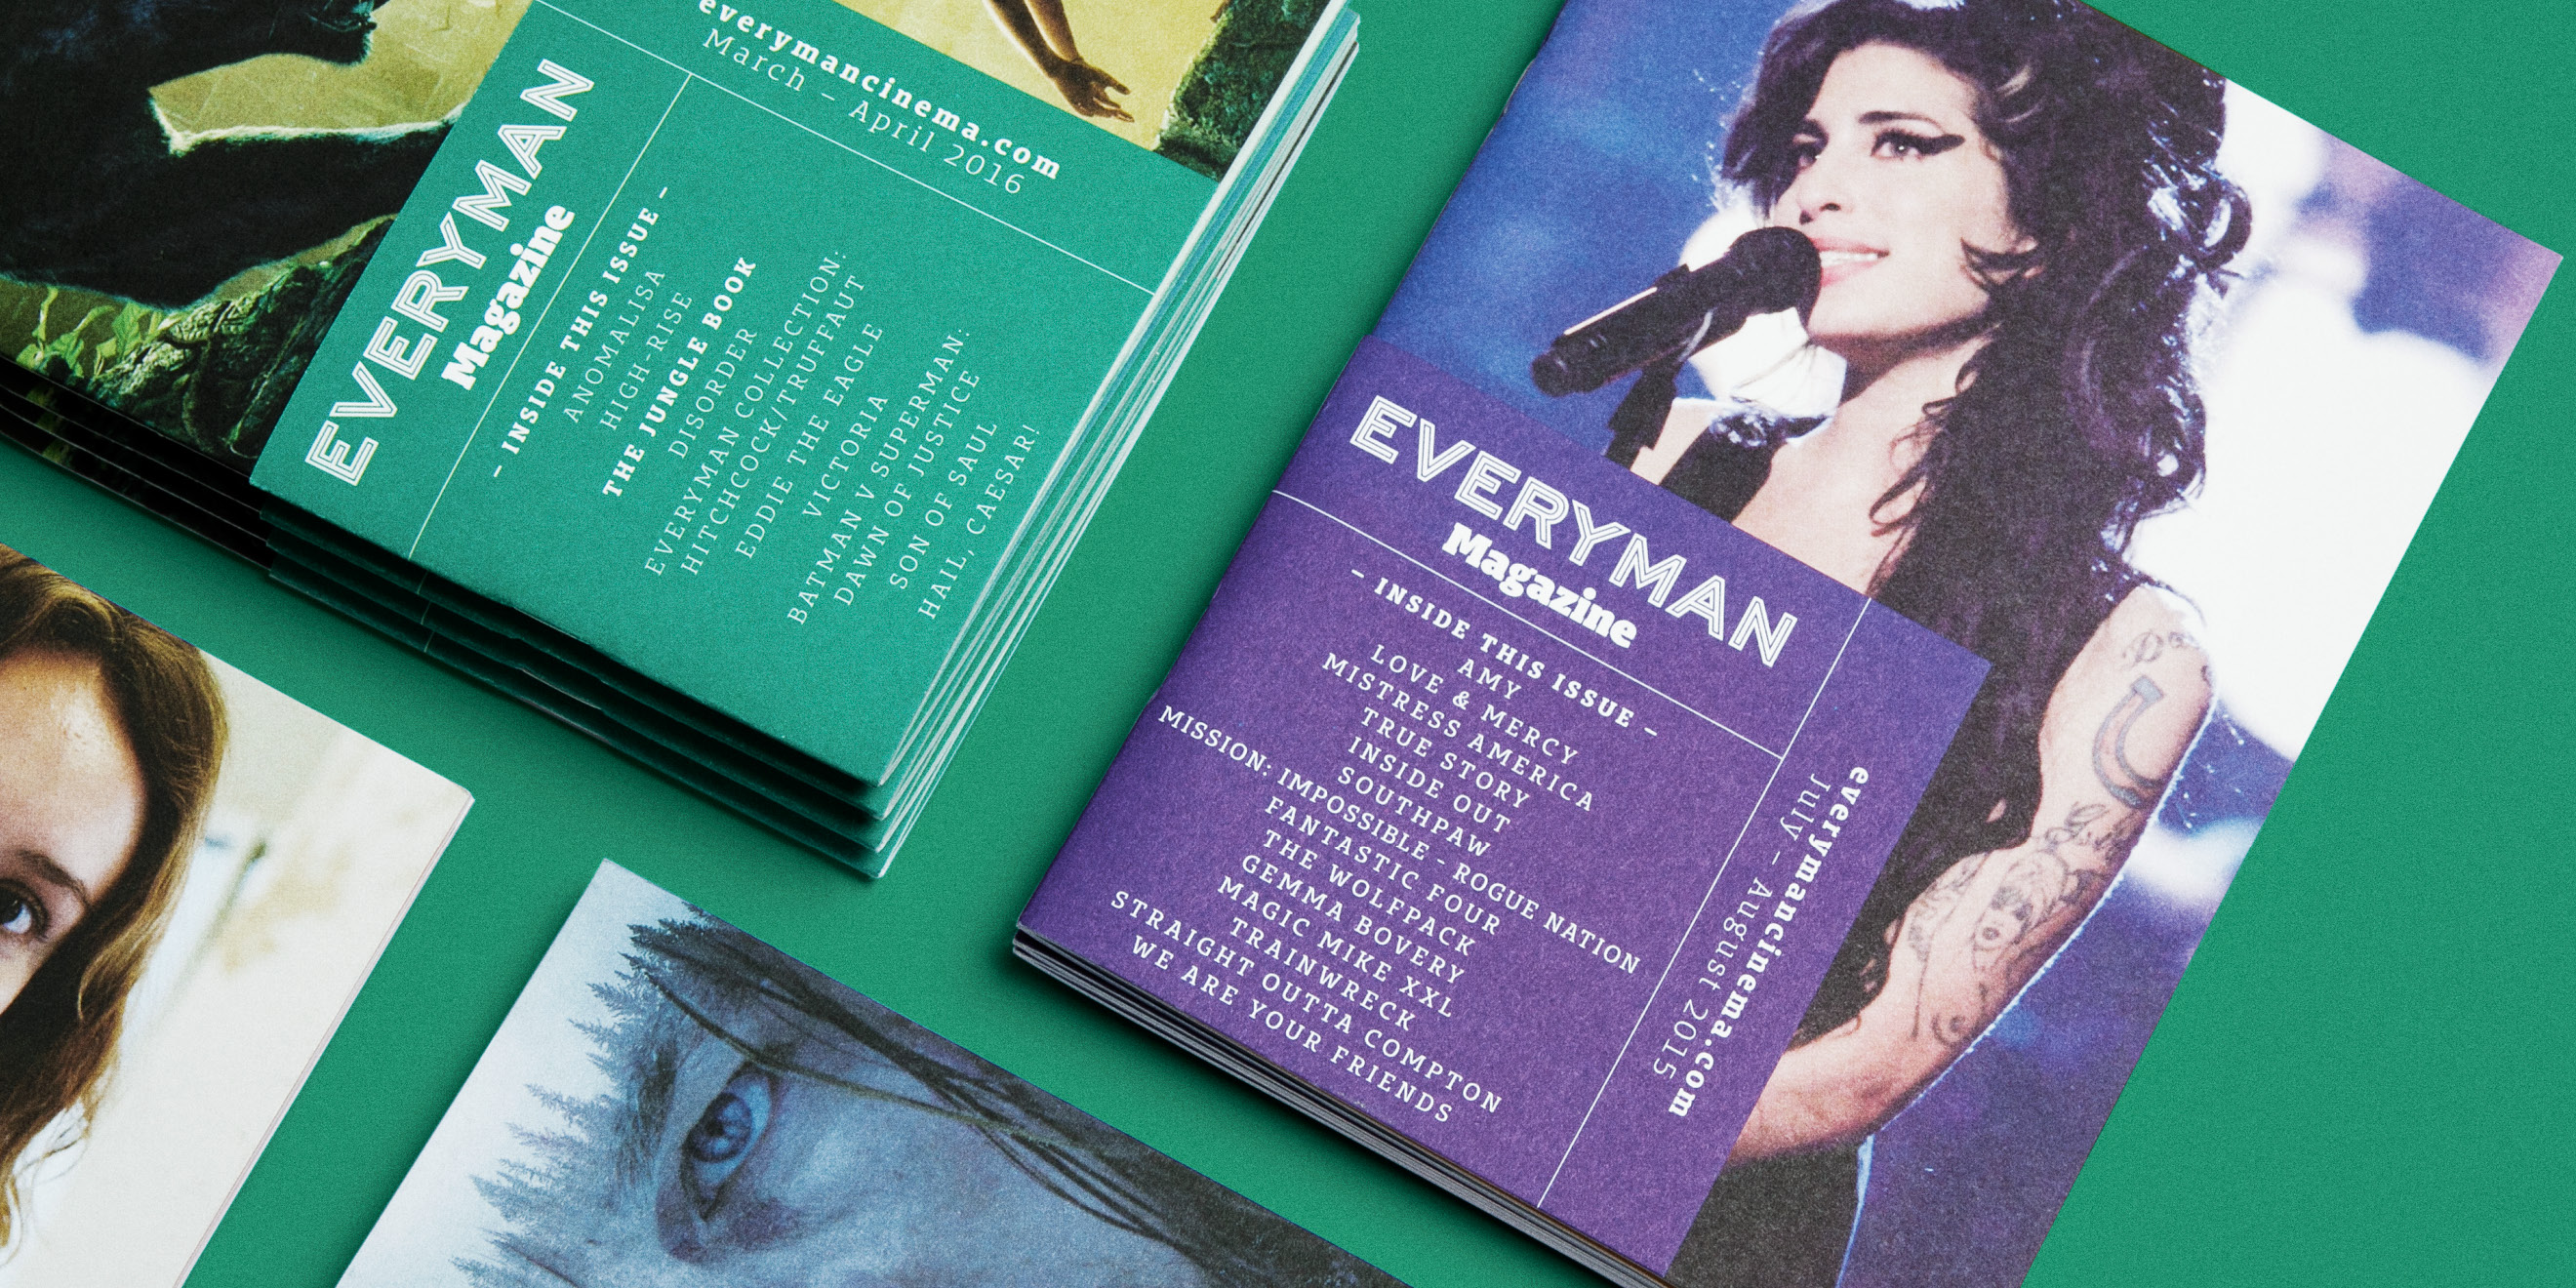 Everyman Cinemas Everyman Magazine designed and created by Human After All